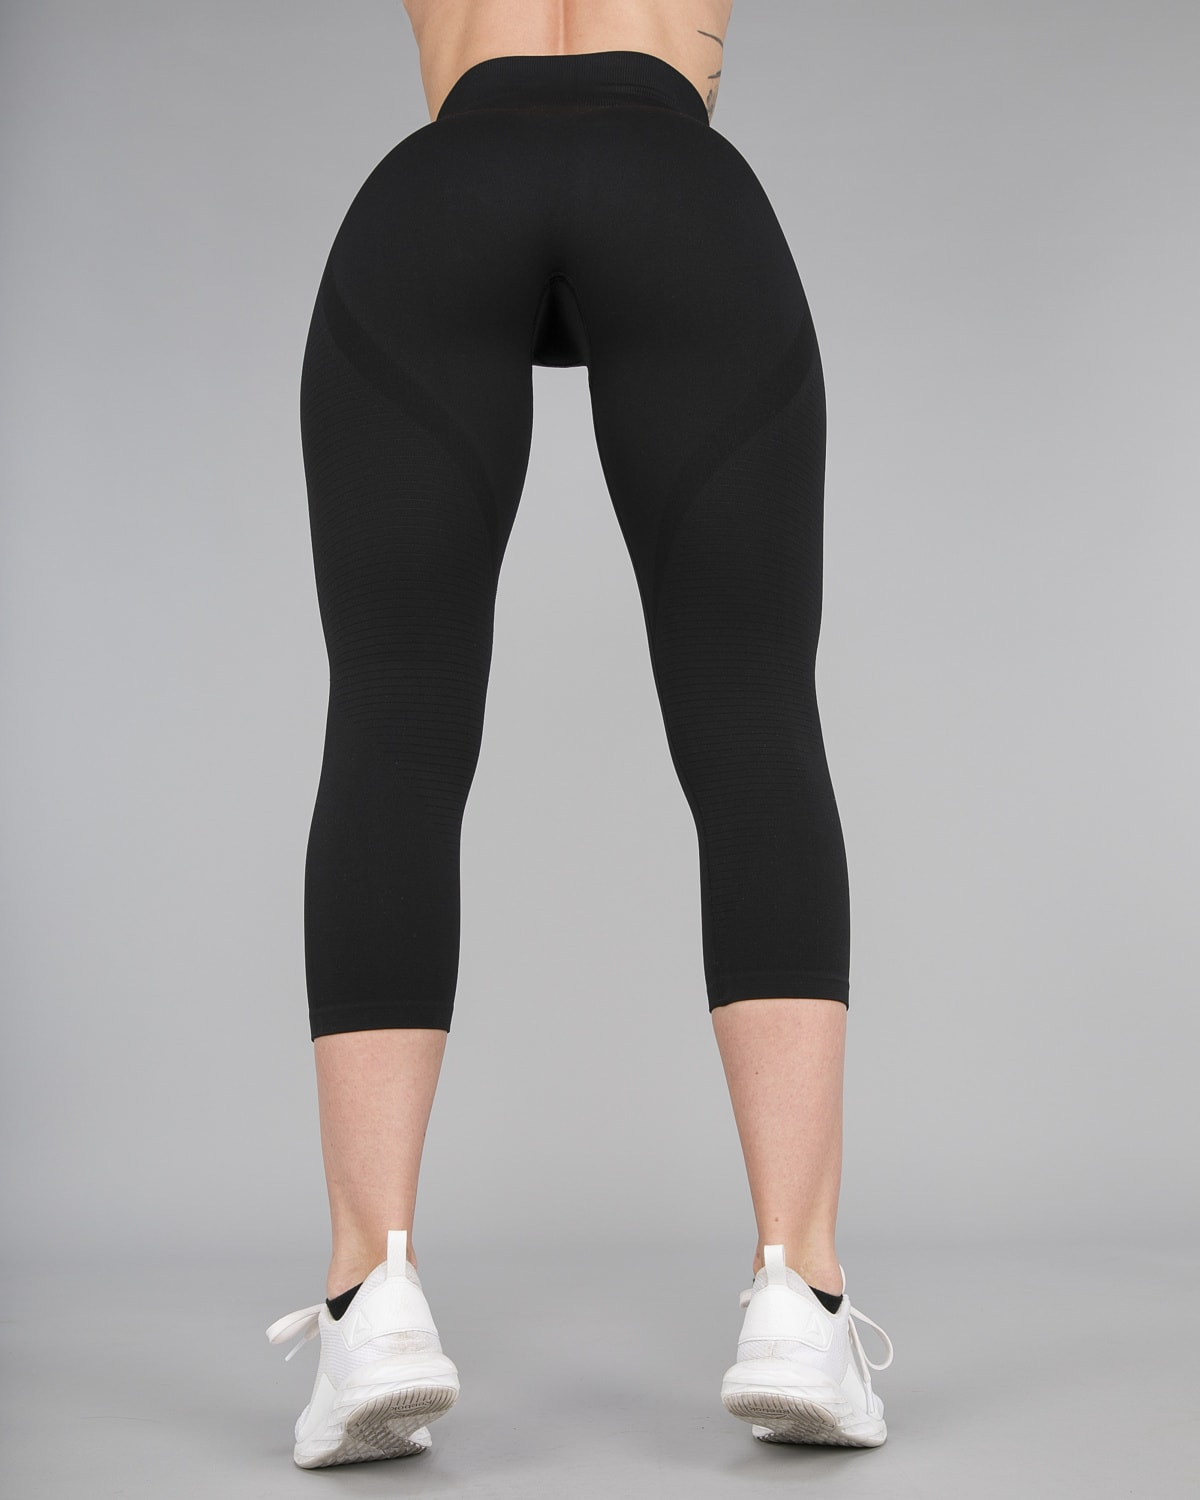 FAMME – Vortex Leggings 7:8 – Black15